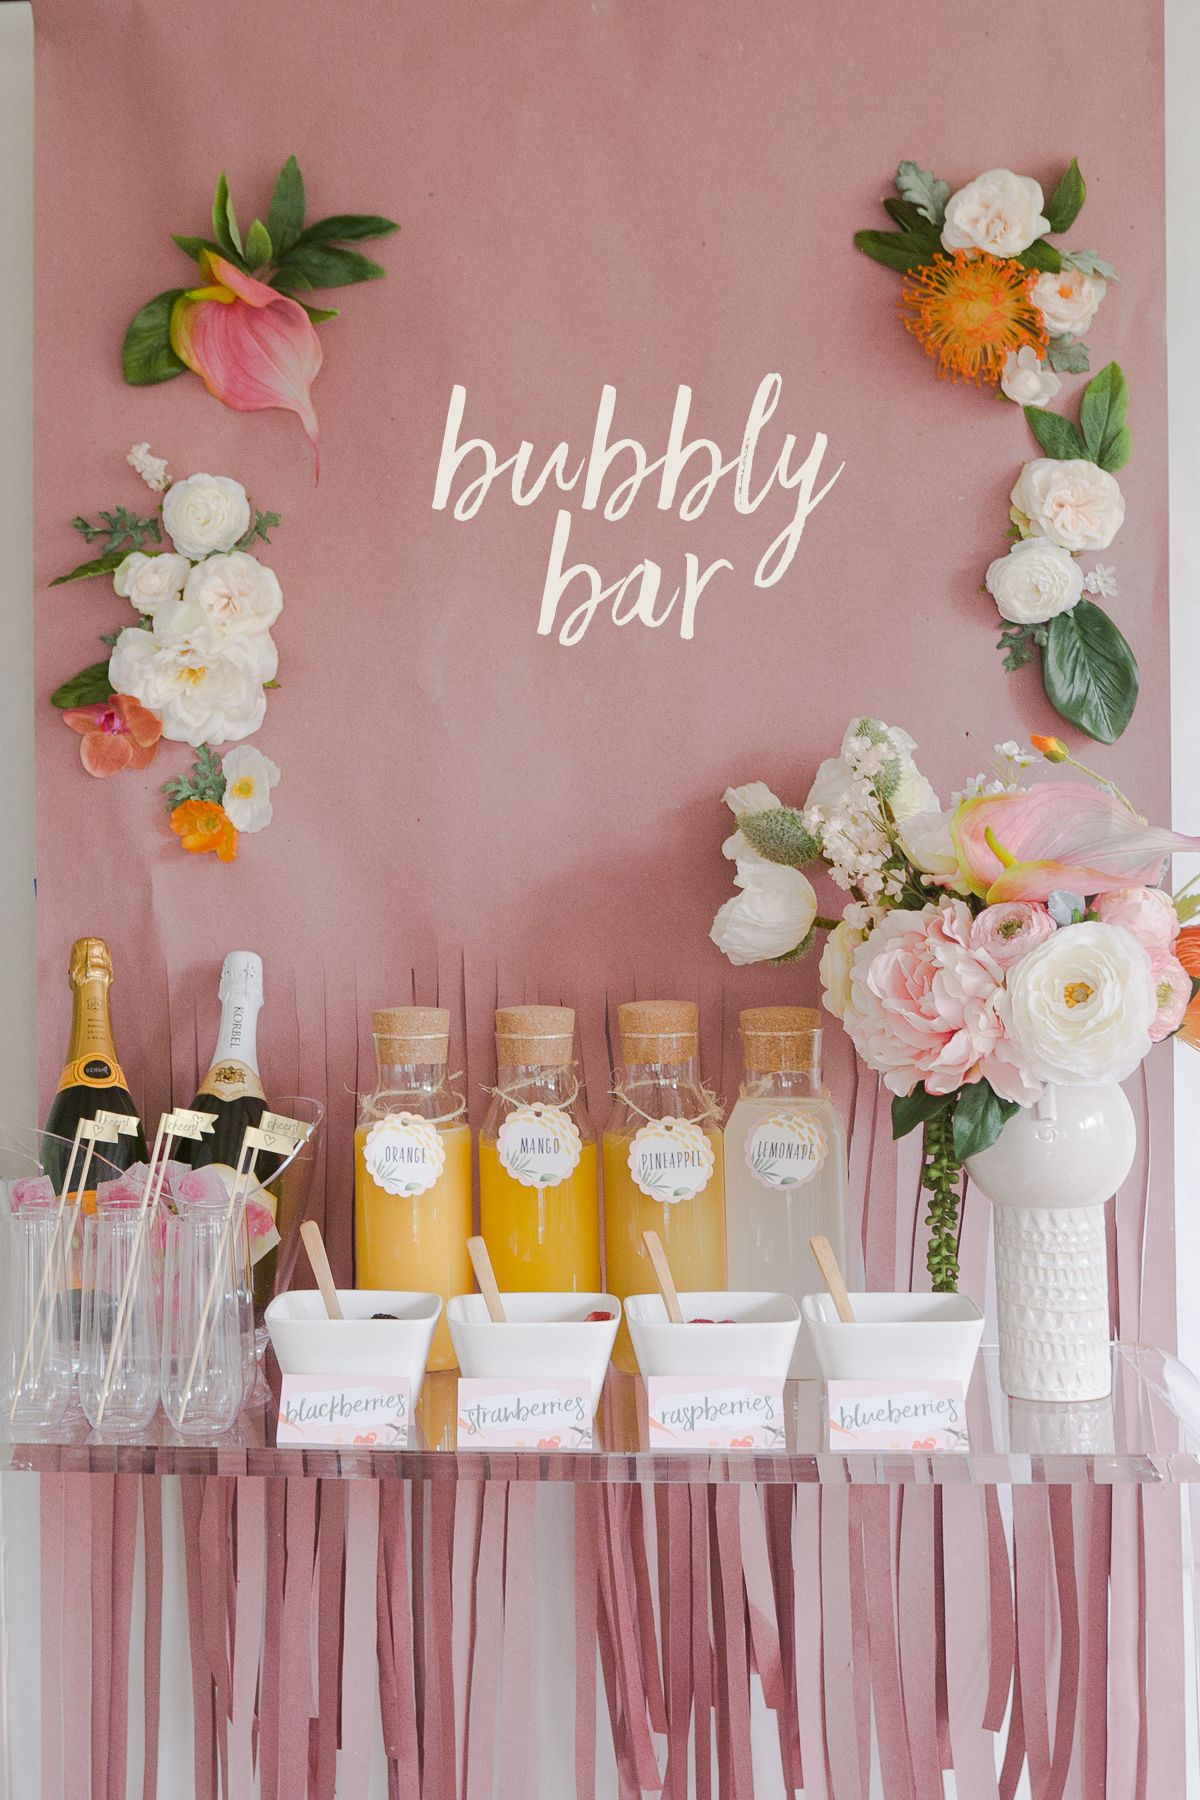 Mimosa Bar Banner 16inch Bachelorette Party Rose Gold Decorations for Bridal Shower Mimosa Bar Balloons Rose Gold Graduation Champagne Brunch Decorations Engagement Party Birthday Party